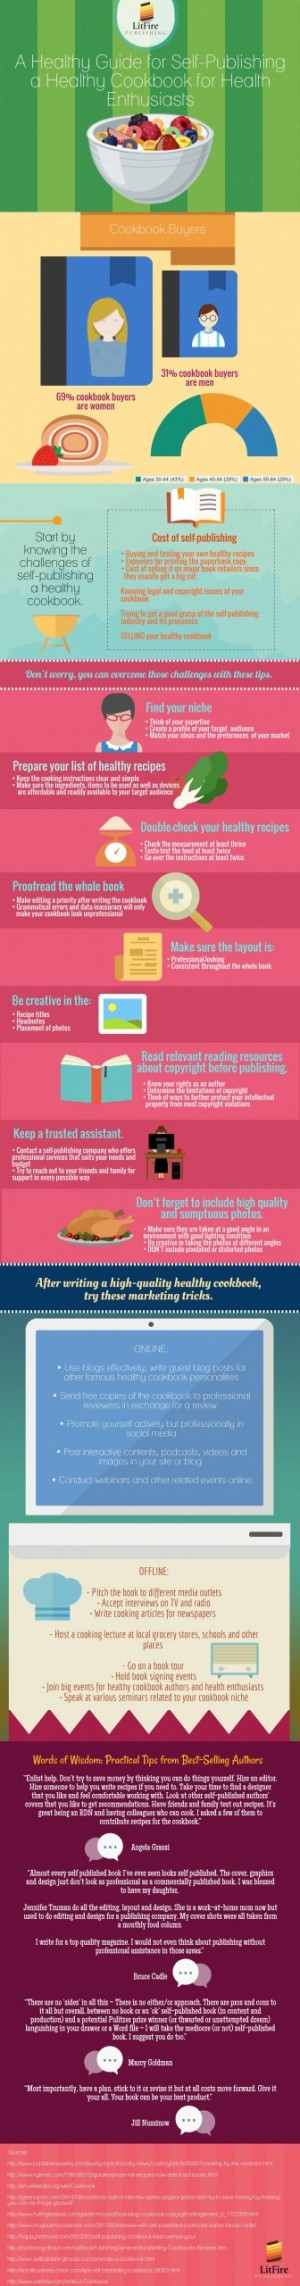 Backstage Pass on How to Self-Publish a Healthy Cookbook for Success